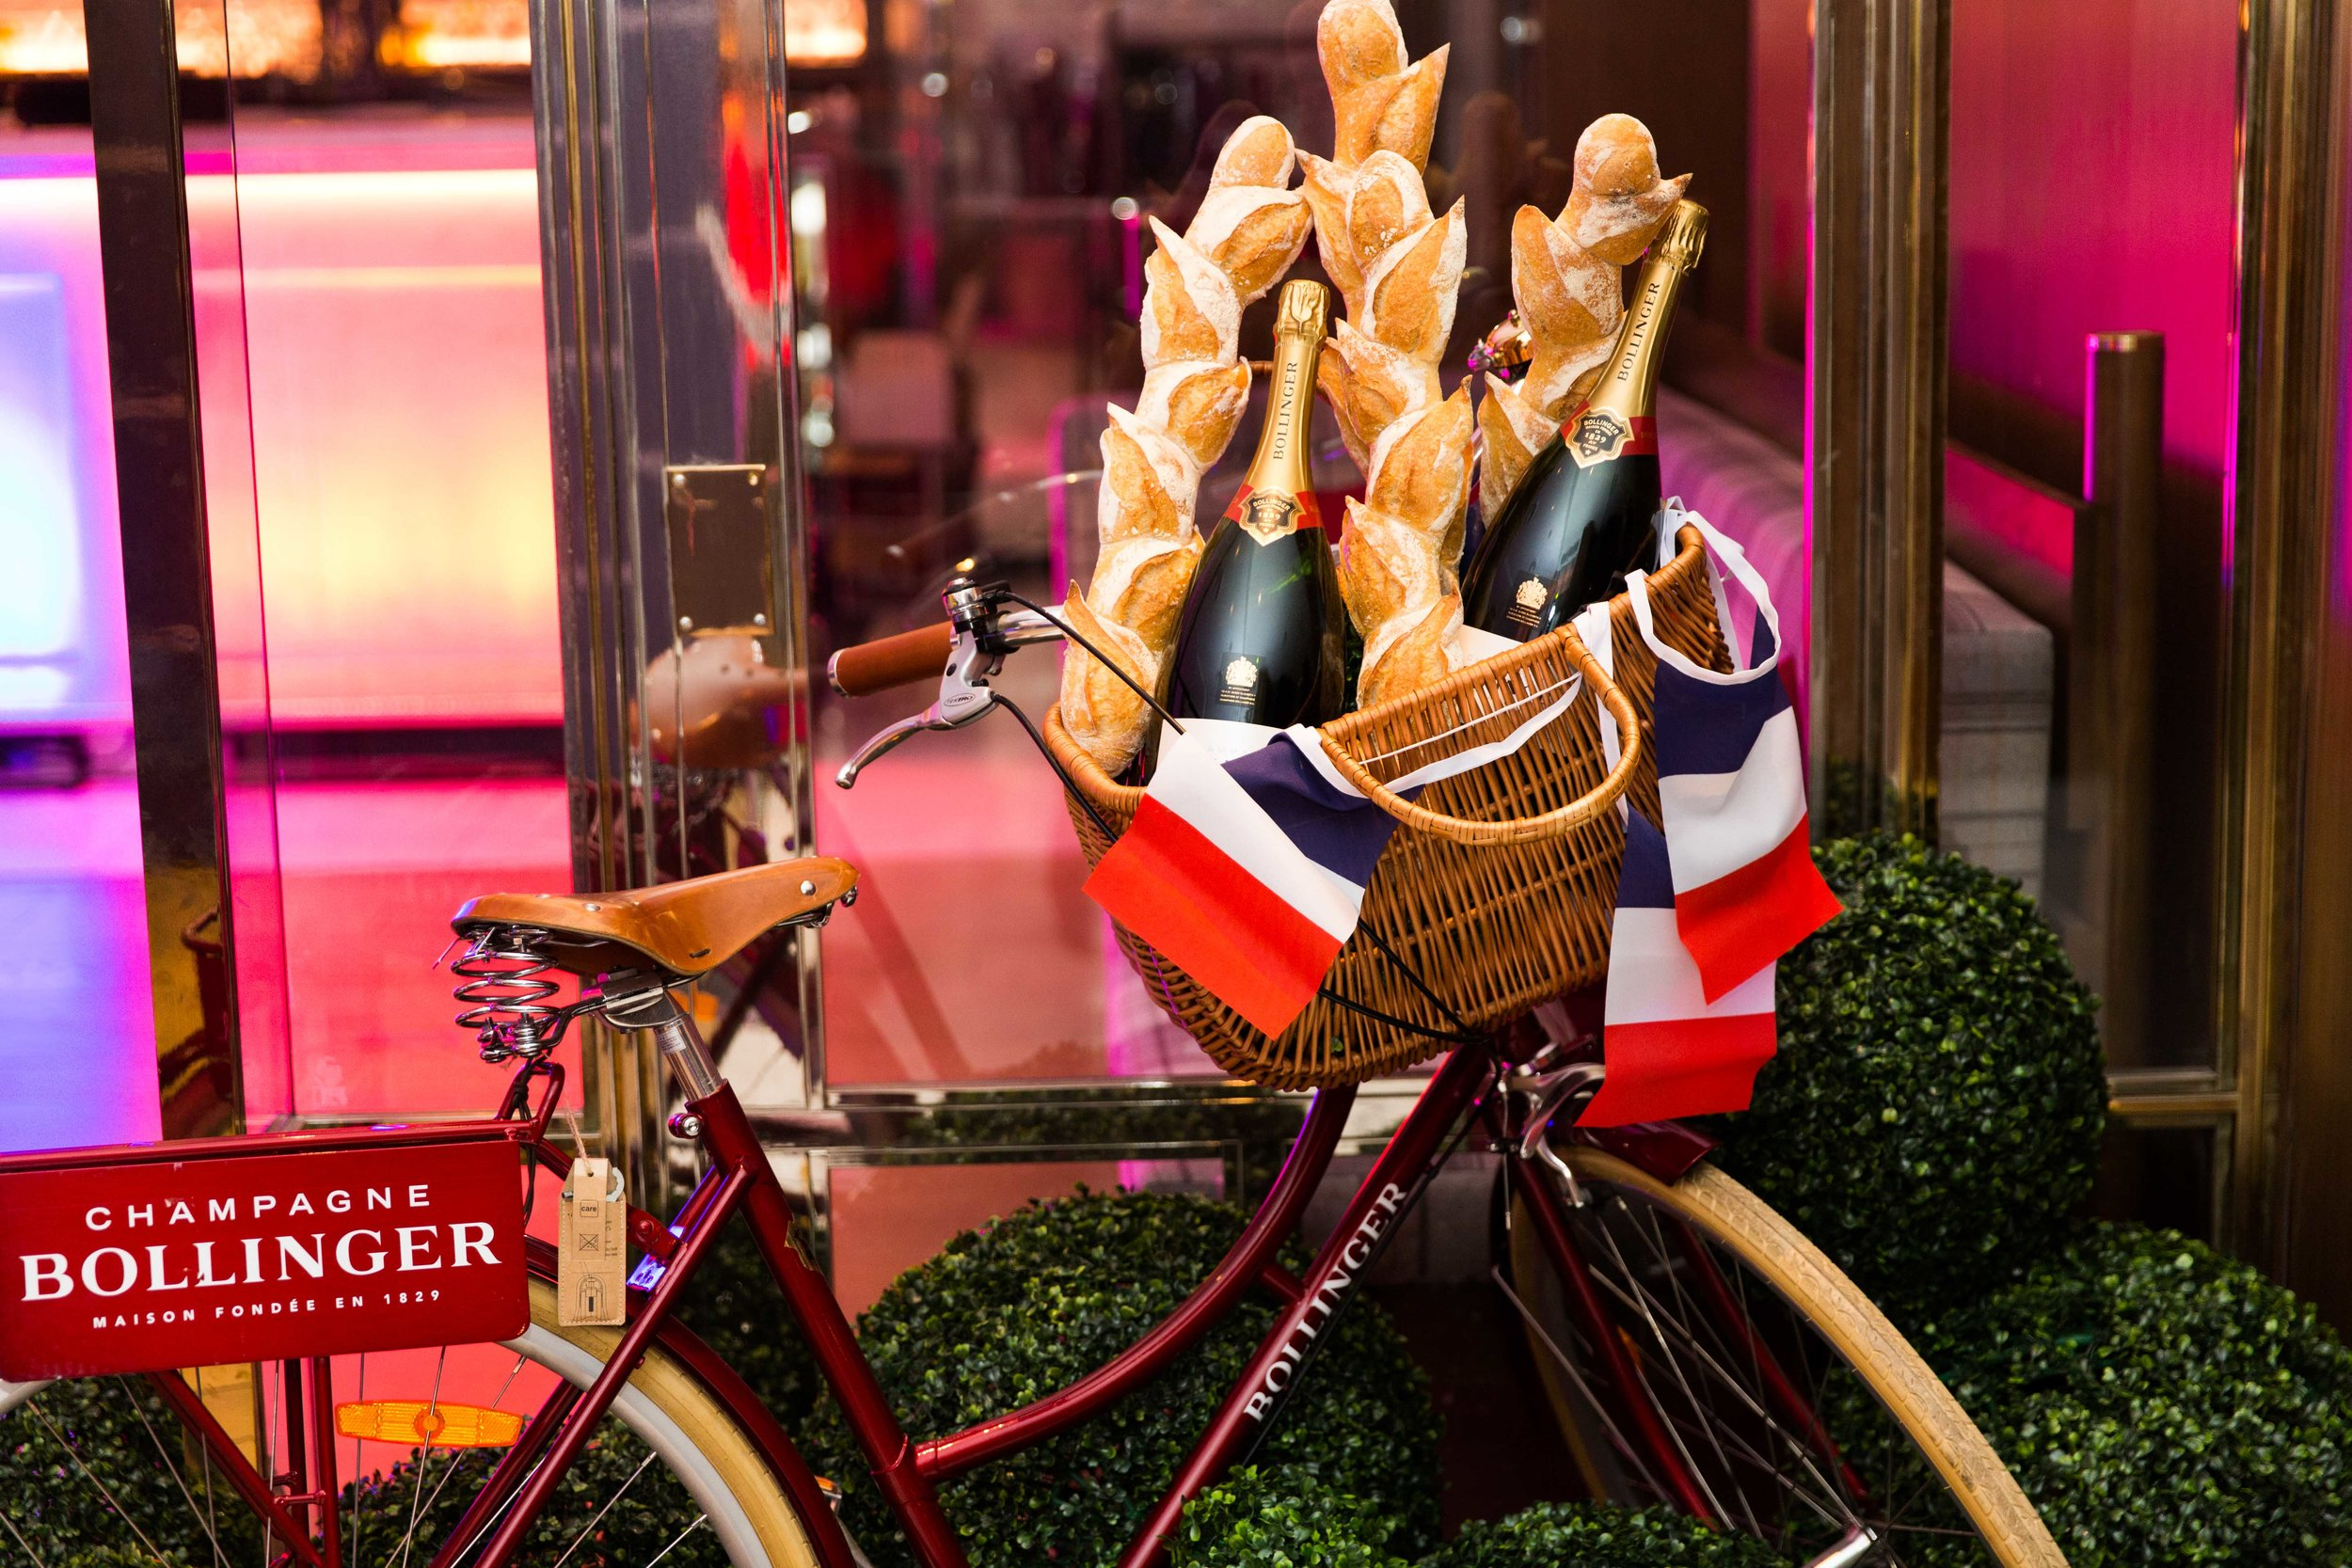 Bollinger champagne in a bicycle basket